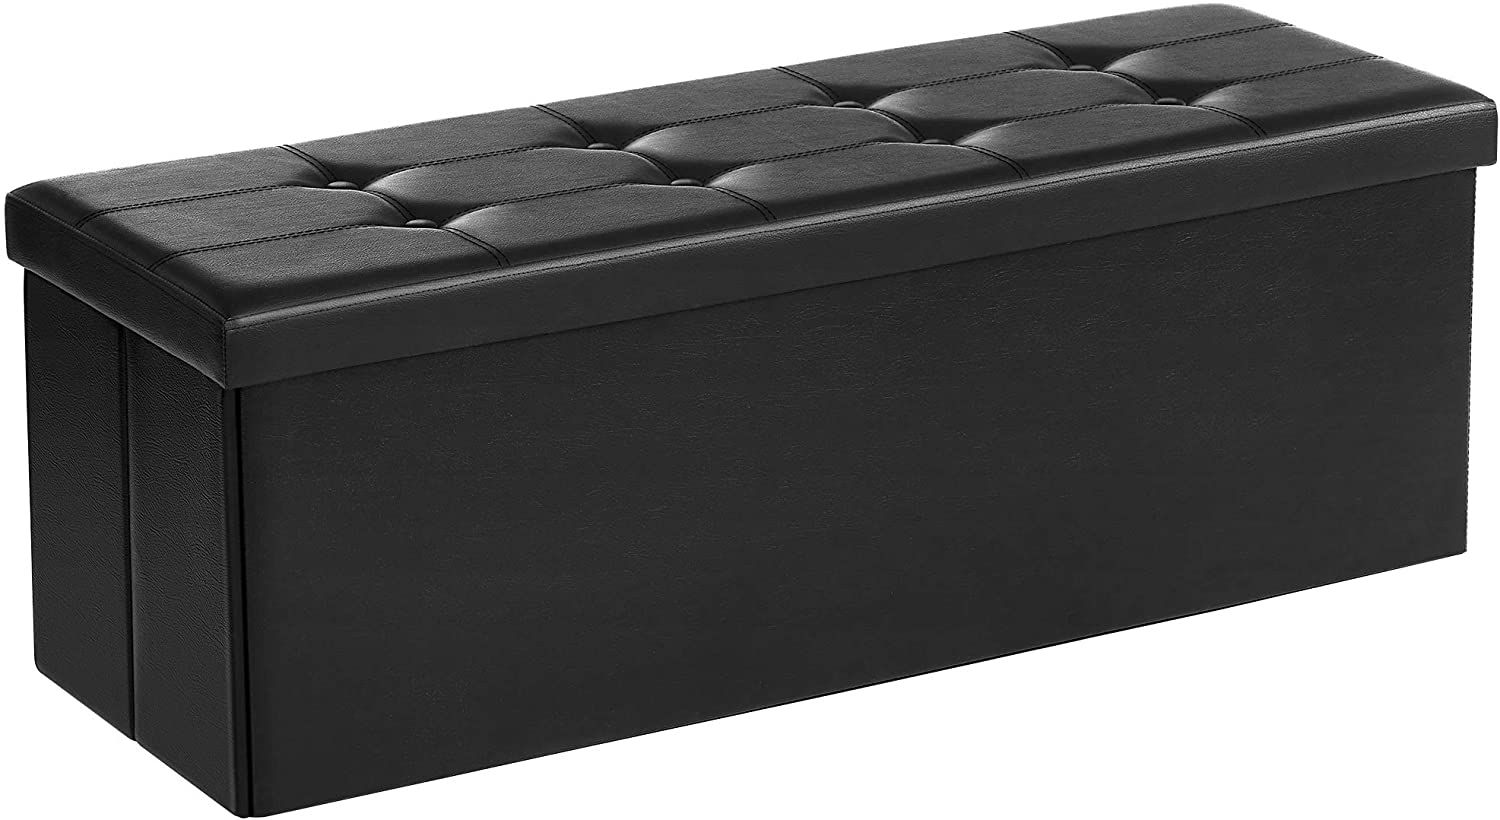 SONGMICS Faux Leather Folding Bench